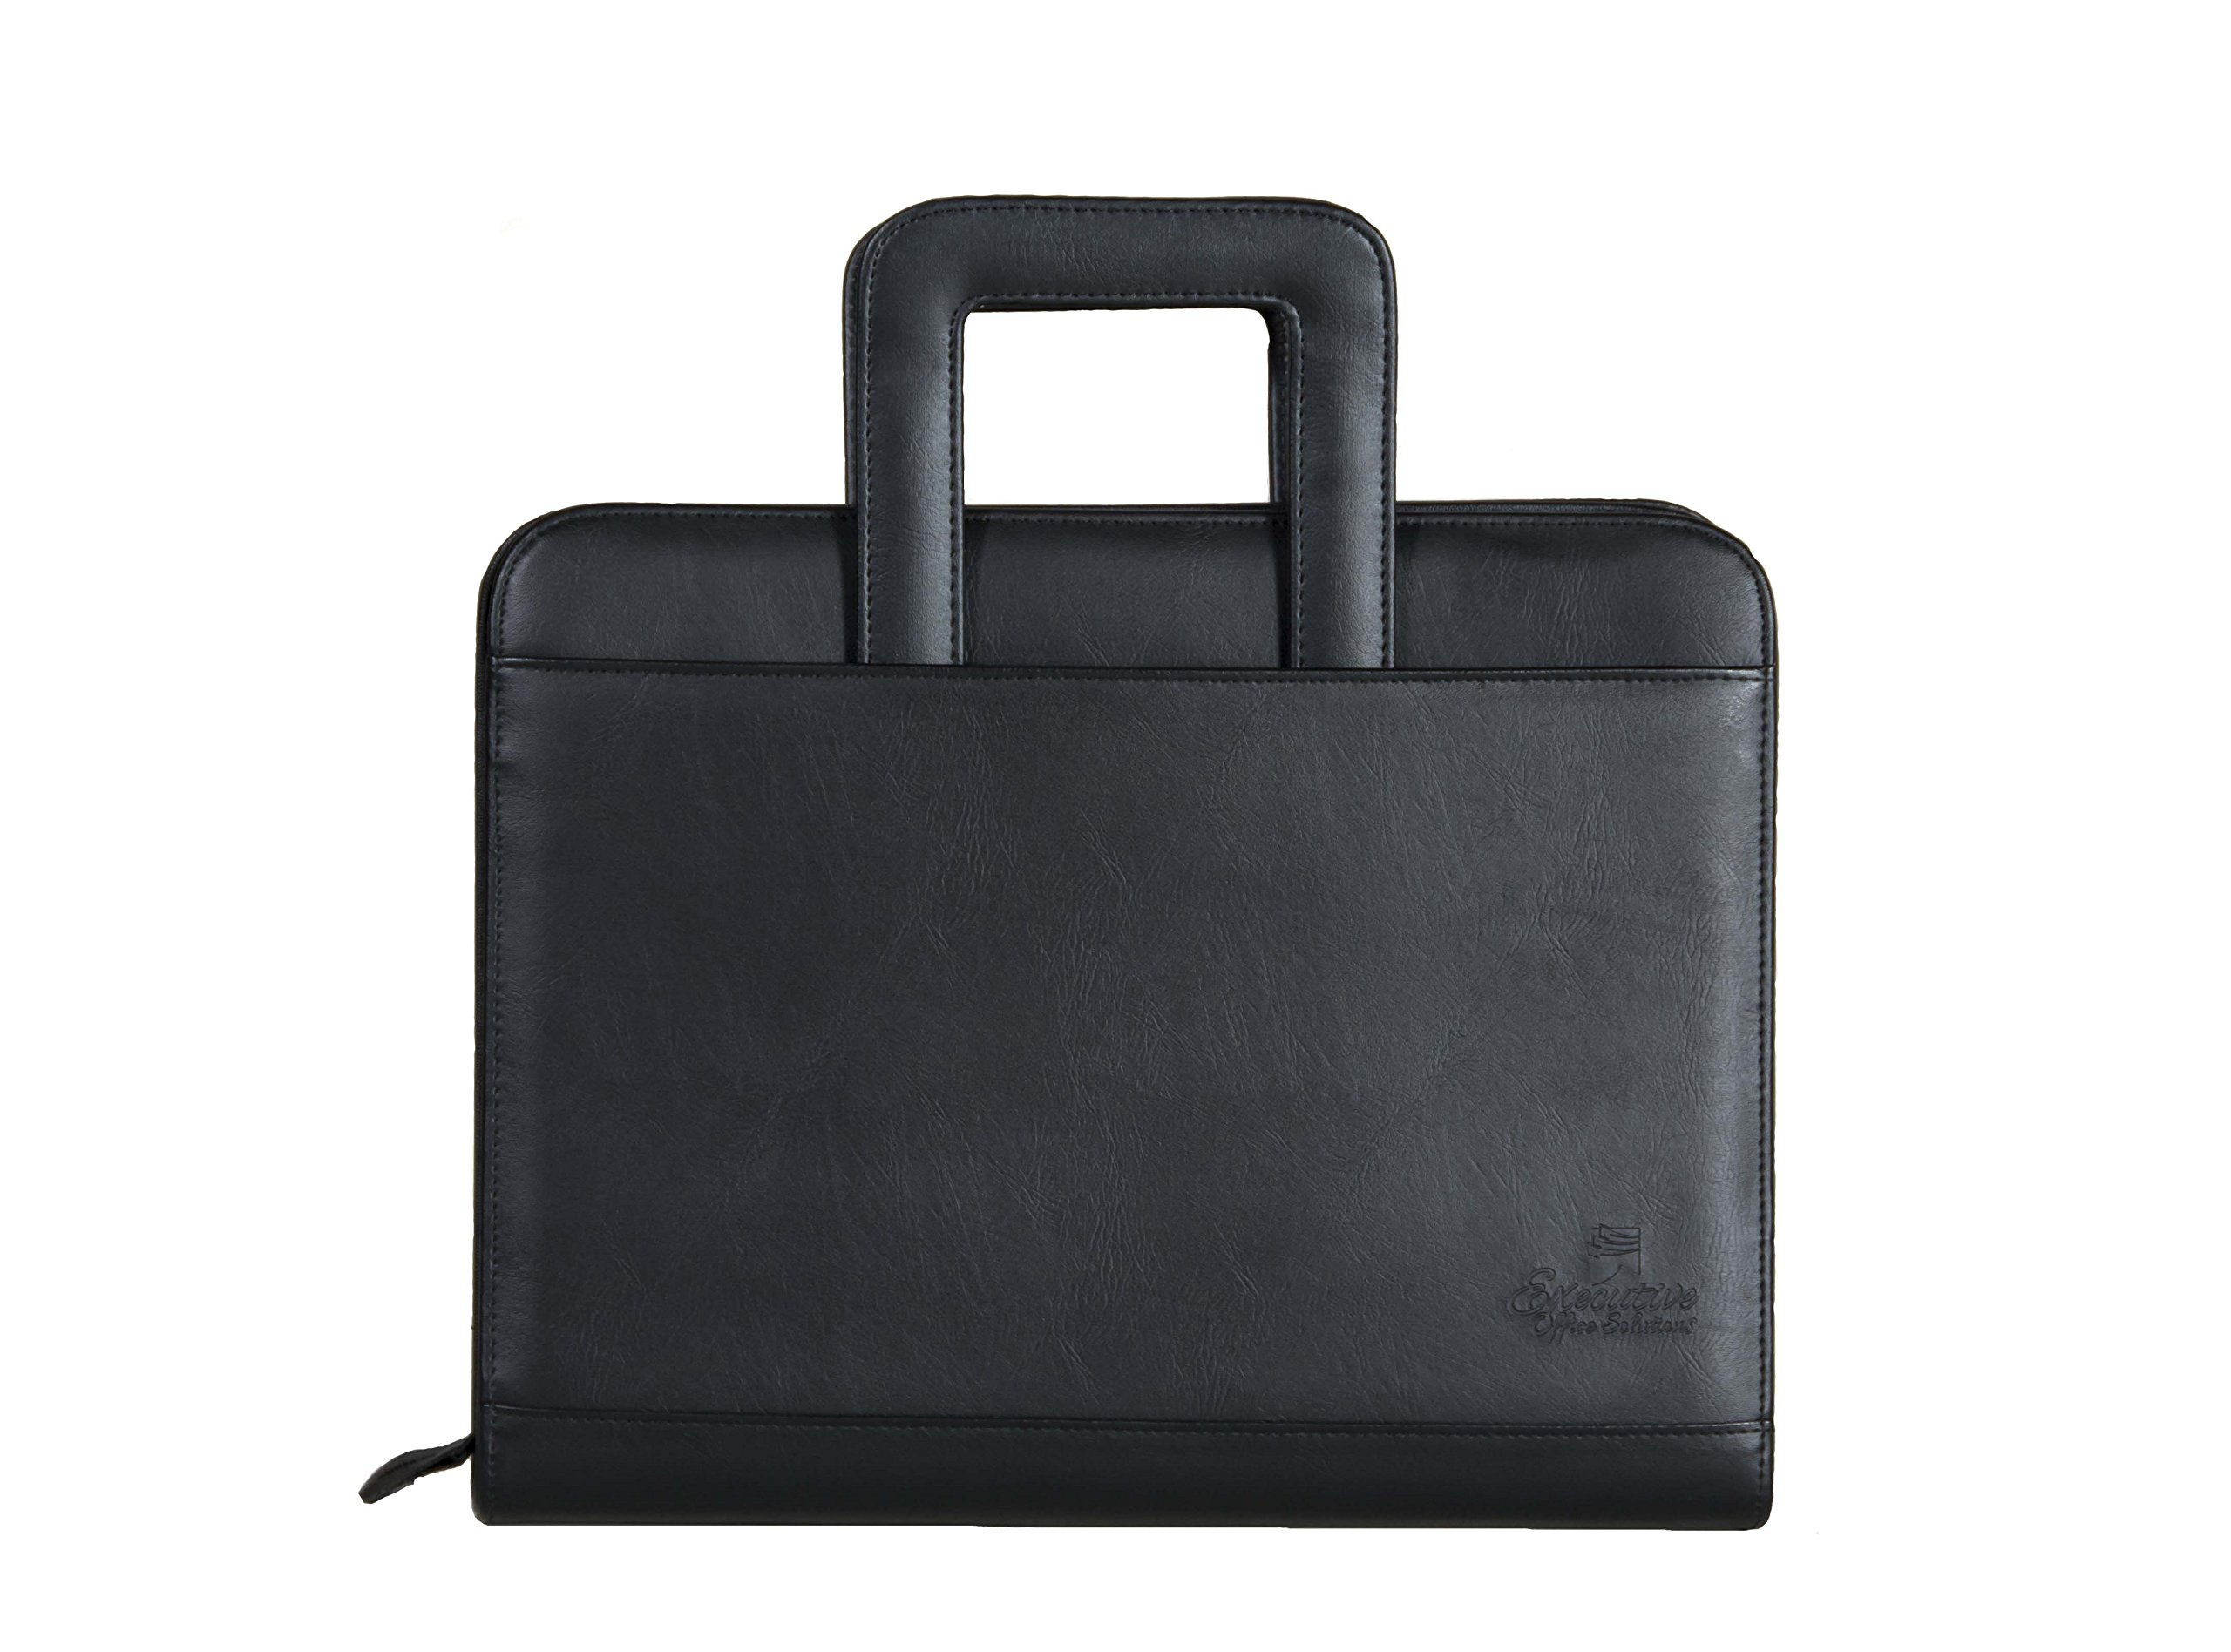 Professional Business Padfolio Portfolio Briefcase Style Organizer Folder With Handles Notepad and 3 Ring Binder - Black Synthetic Leather…